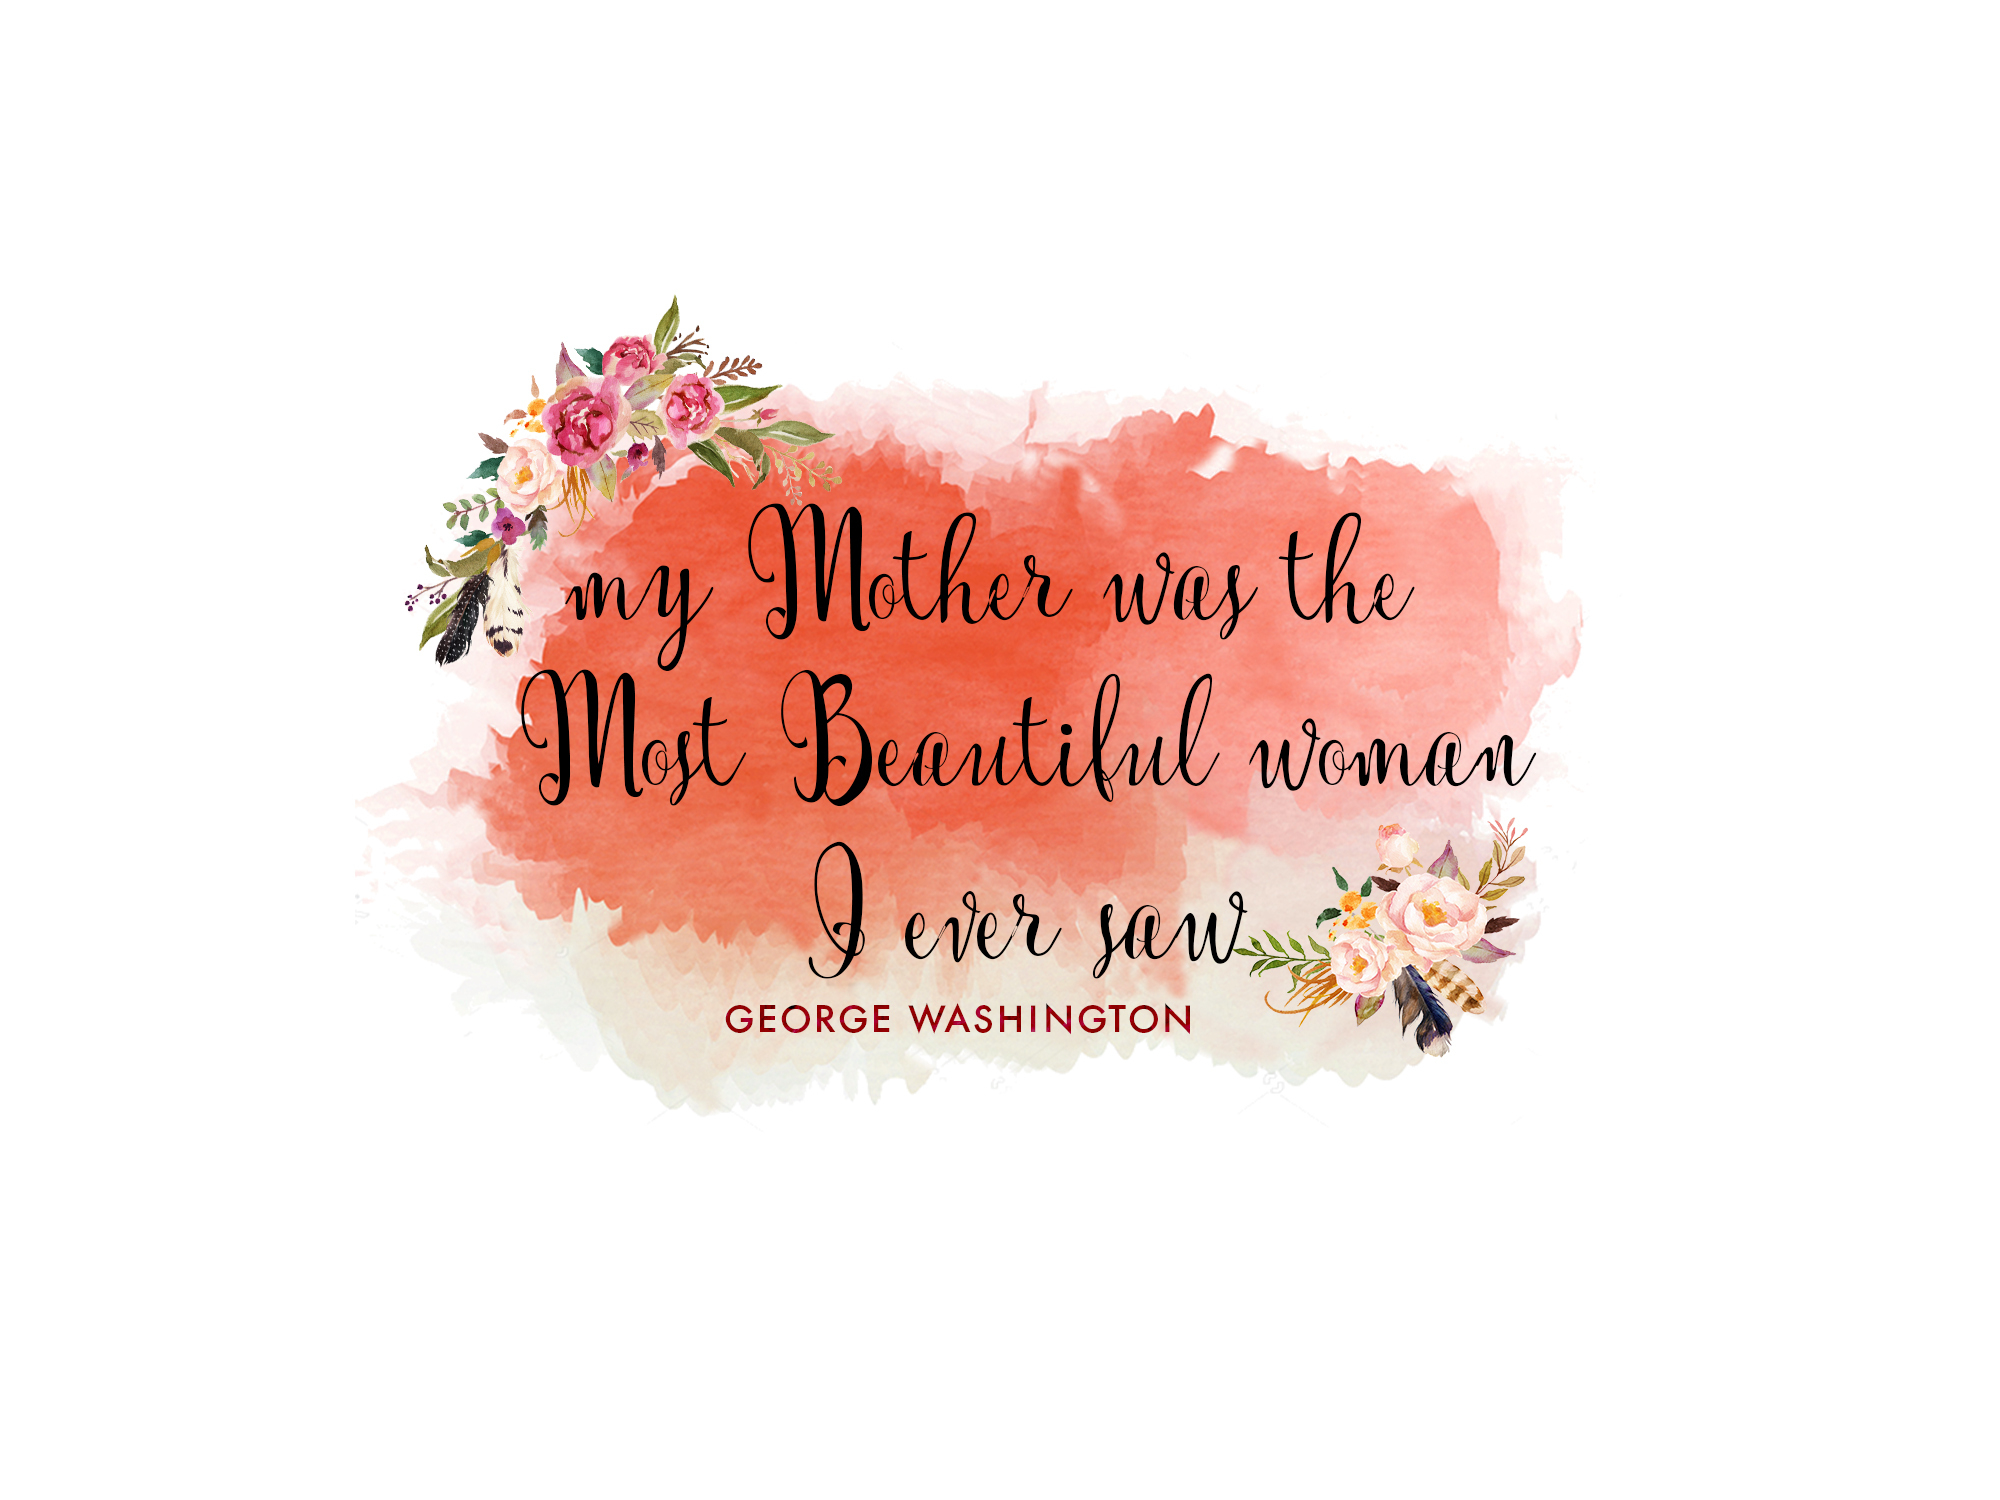 Free Mother's Day Printable George Washington Quote - Free Printable Mothers Day Cards No Download